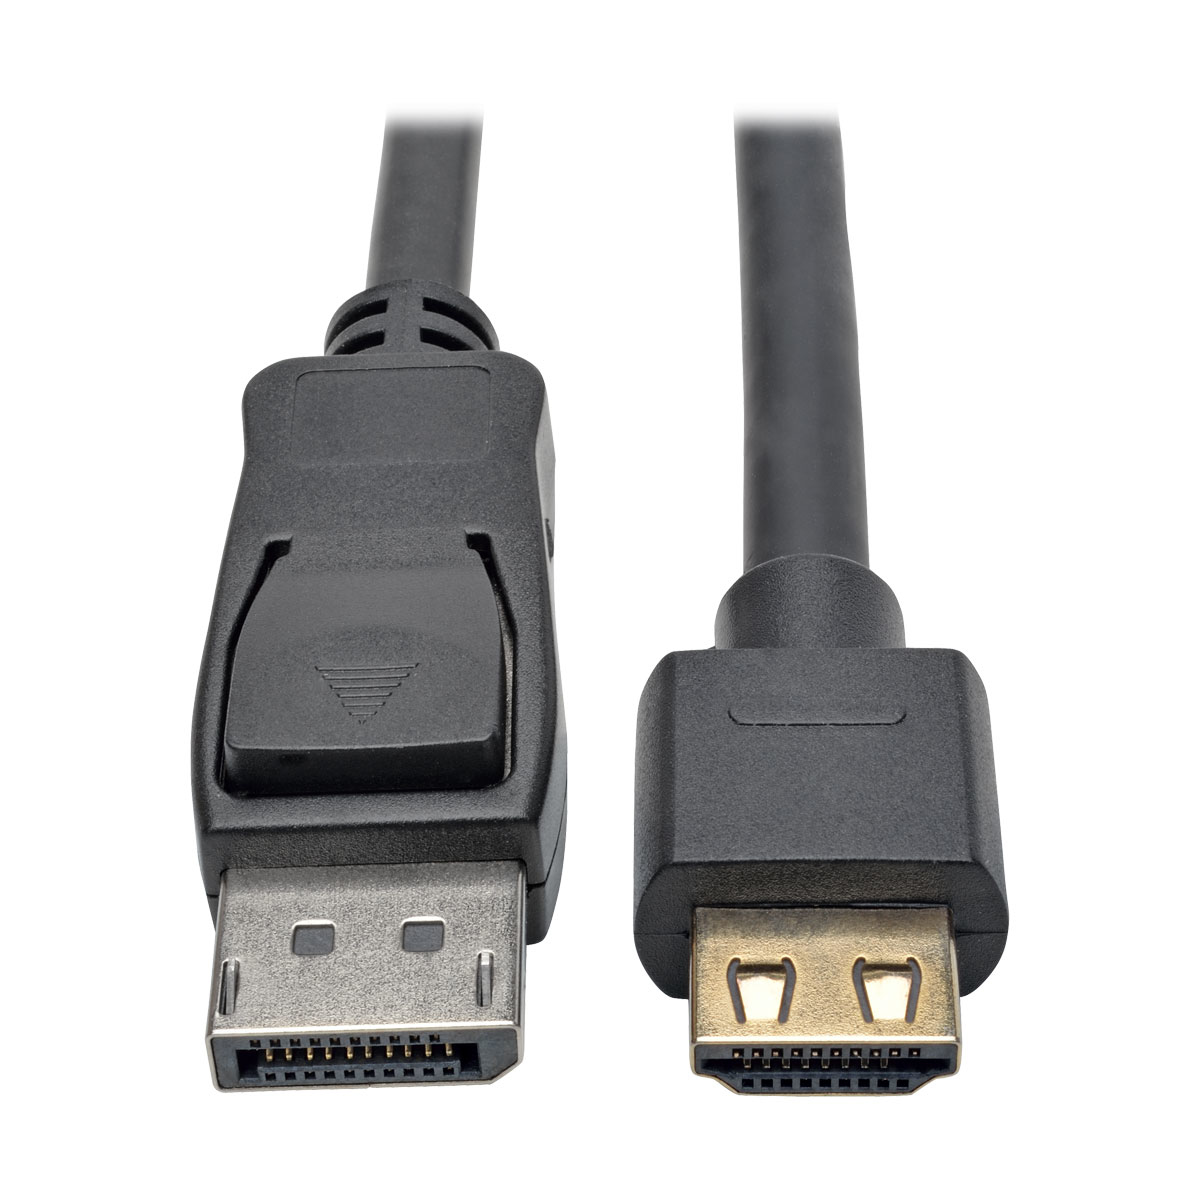 Tripp Lite DisplayPort 1.2a to HDMI Active Adapter Cable with Gripping HDMI Plug, HDMI 2.0, HDCP 2.2, 4K x 2K @ 60 Hz (M/M), 6.09 m